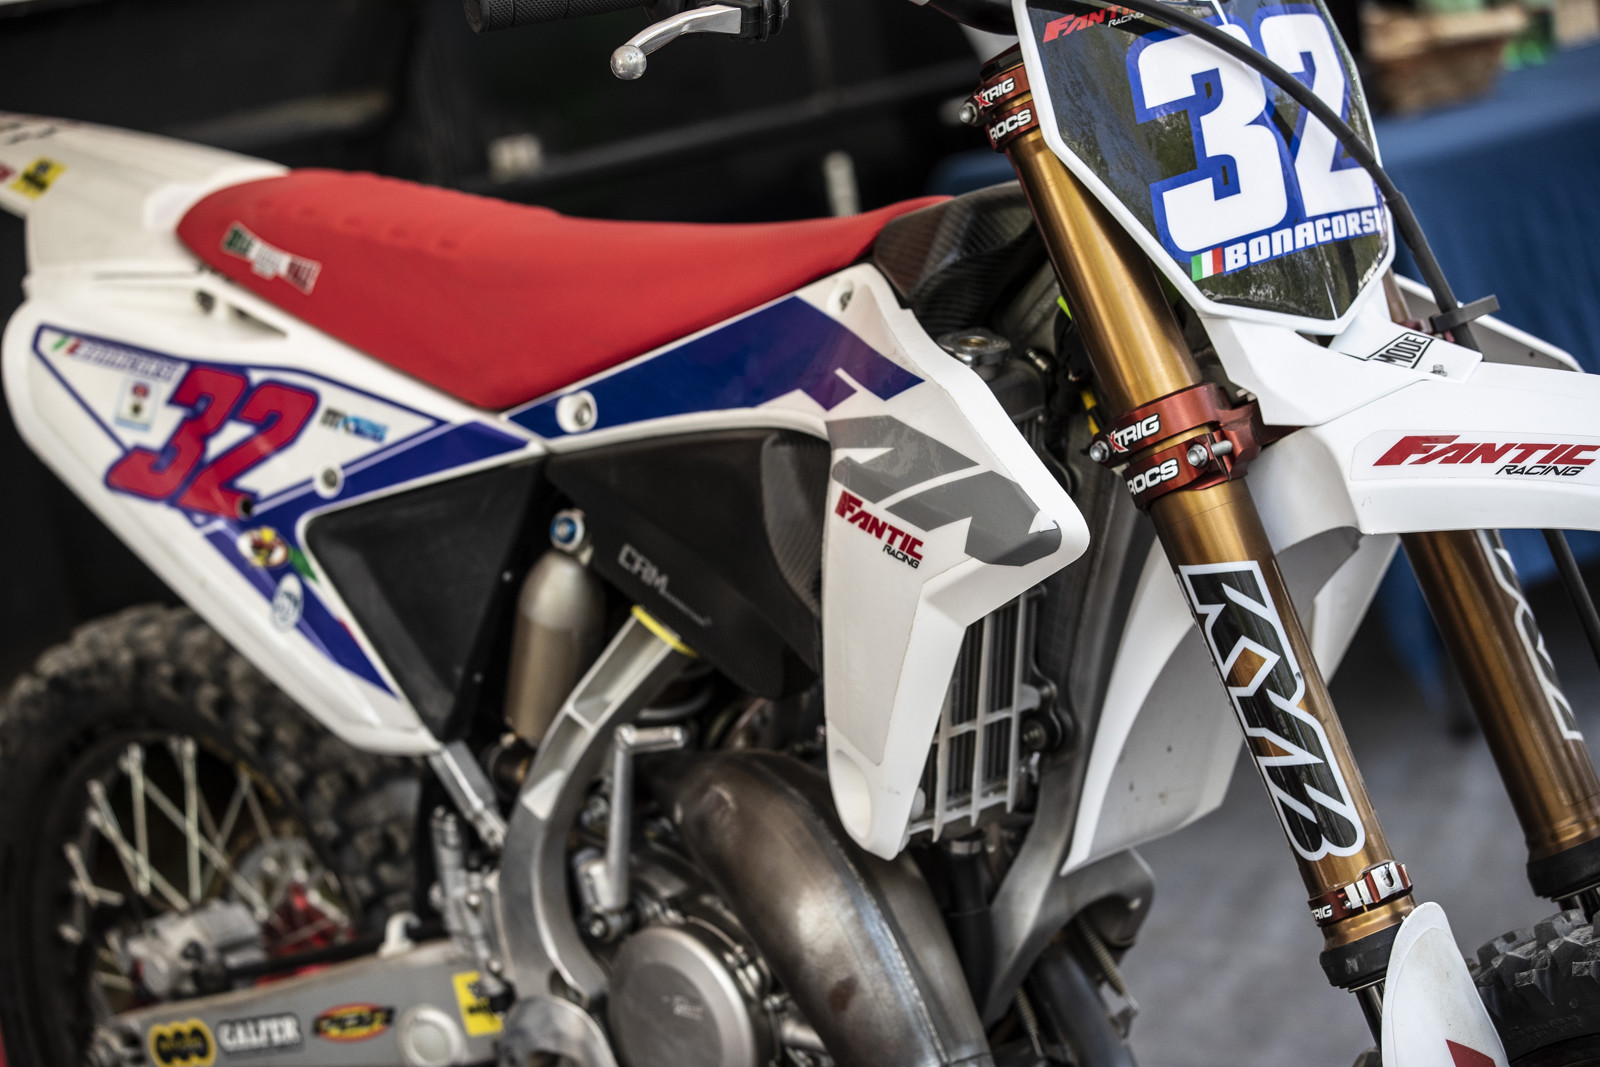 Let's get right into the bikes. As requested here is a look at Fantic XX125 ridden by Andrea Bonacorsi in the EMX125 class.